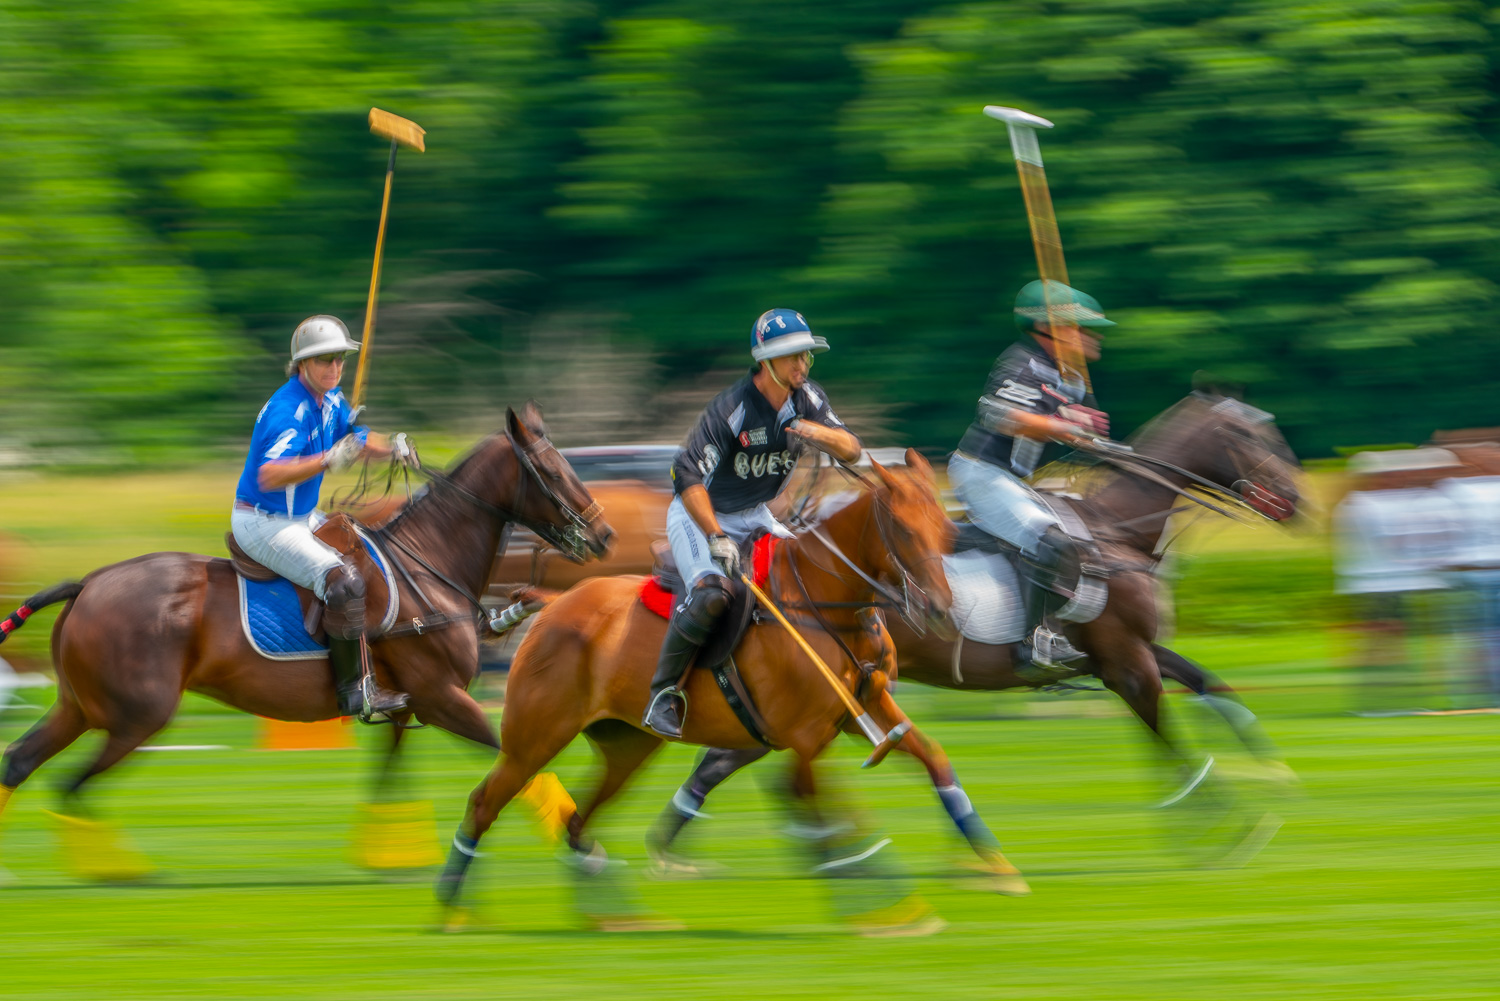 polo players racing for the ball in a blur at the mashomack polo club in pine plains.jpg